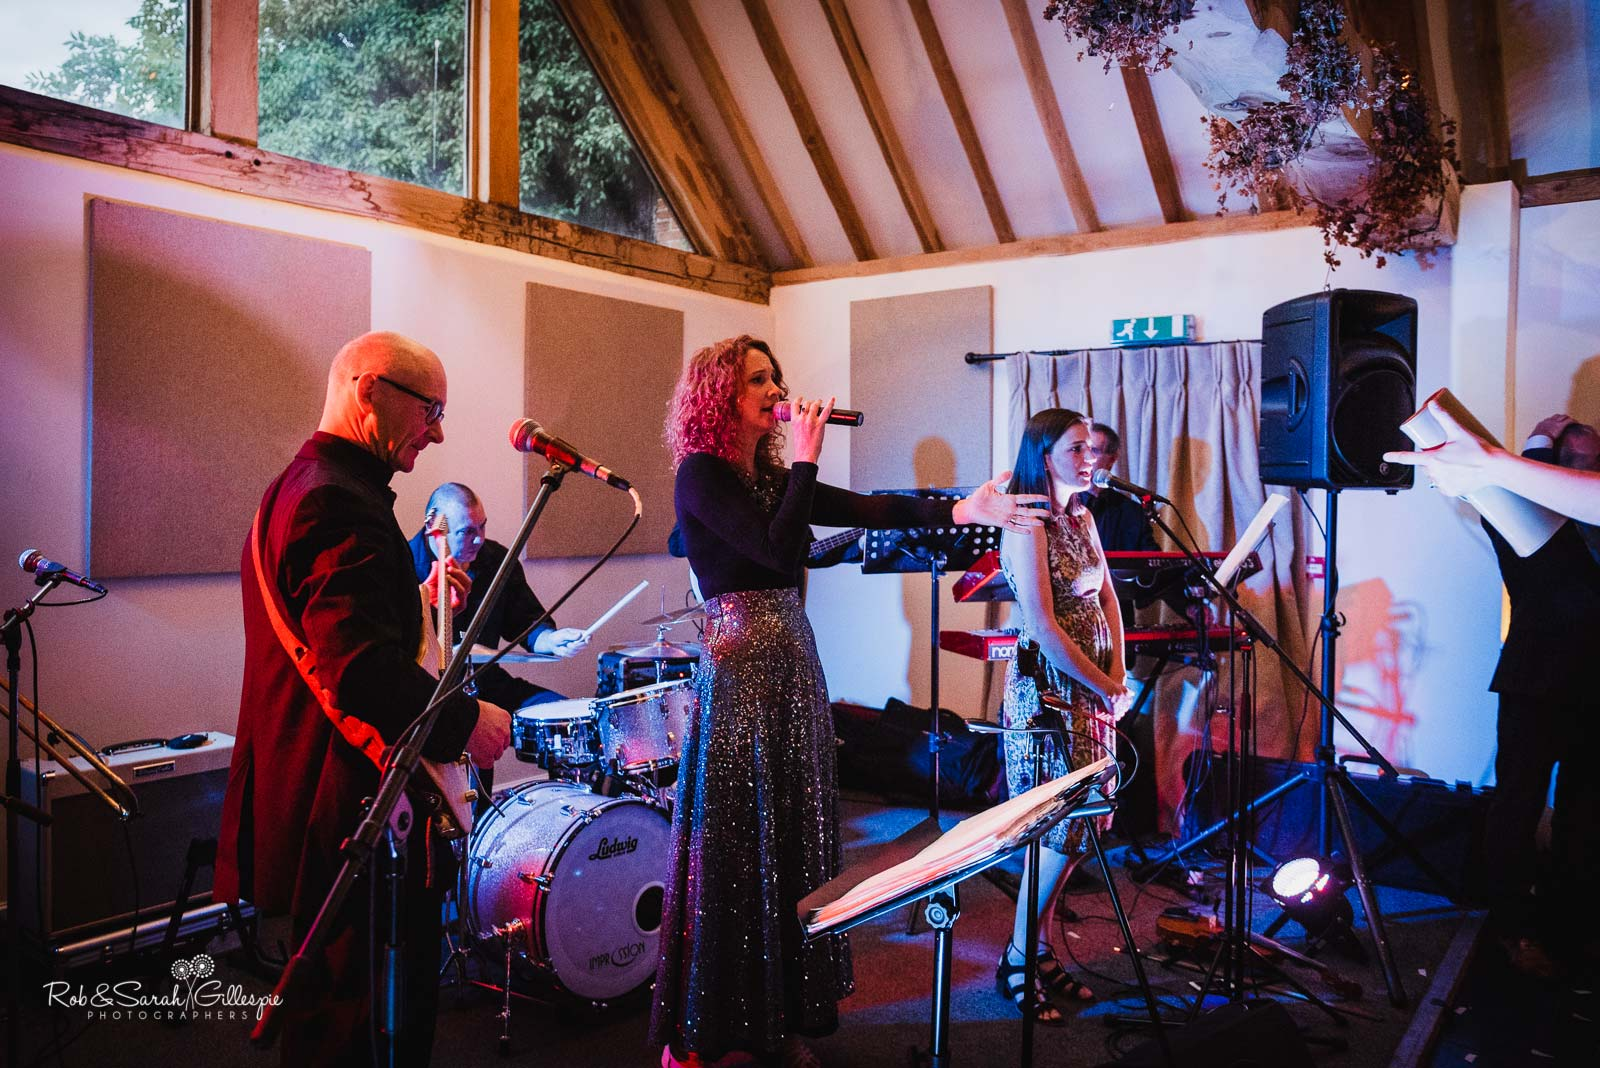 Ceilidh band at Wethele Manor wedding